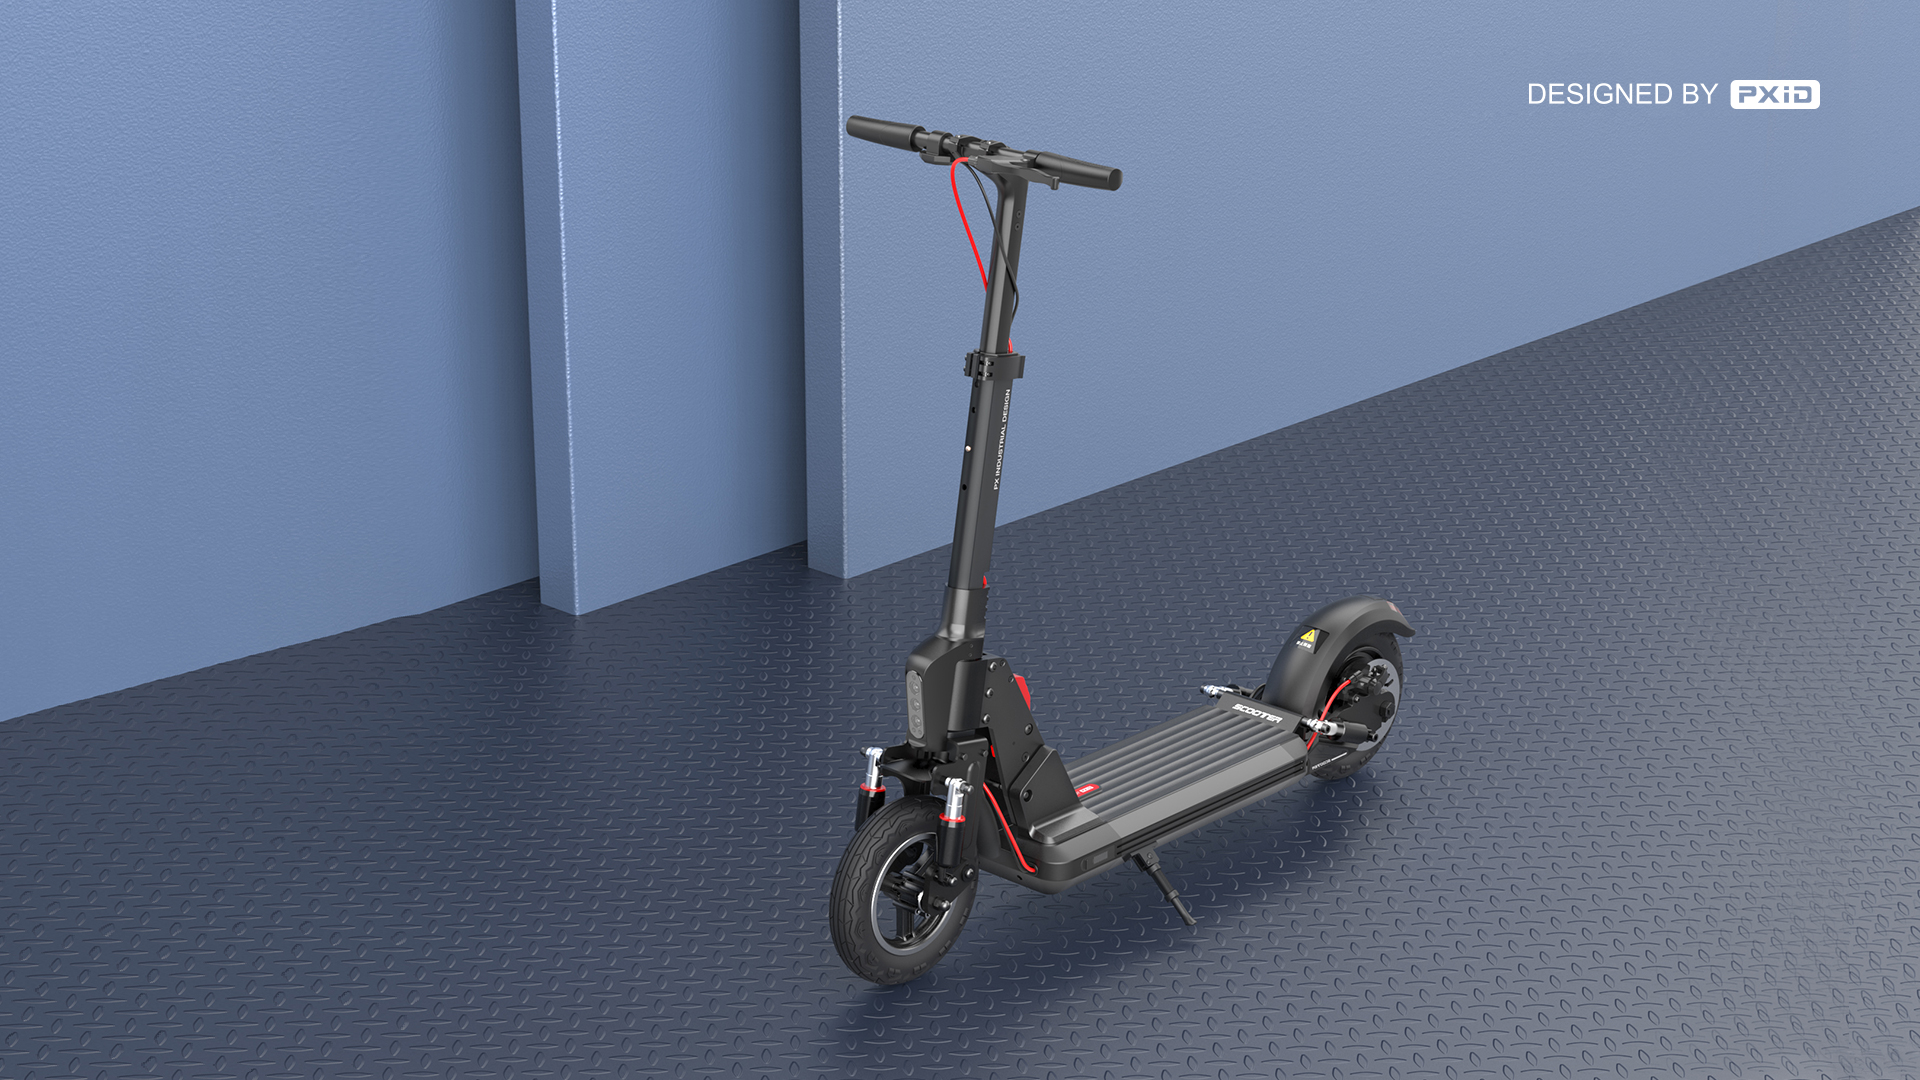 Britain is ready to embark on a journey on electric scooters to transform transport in city centres